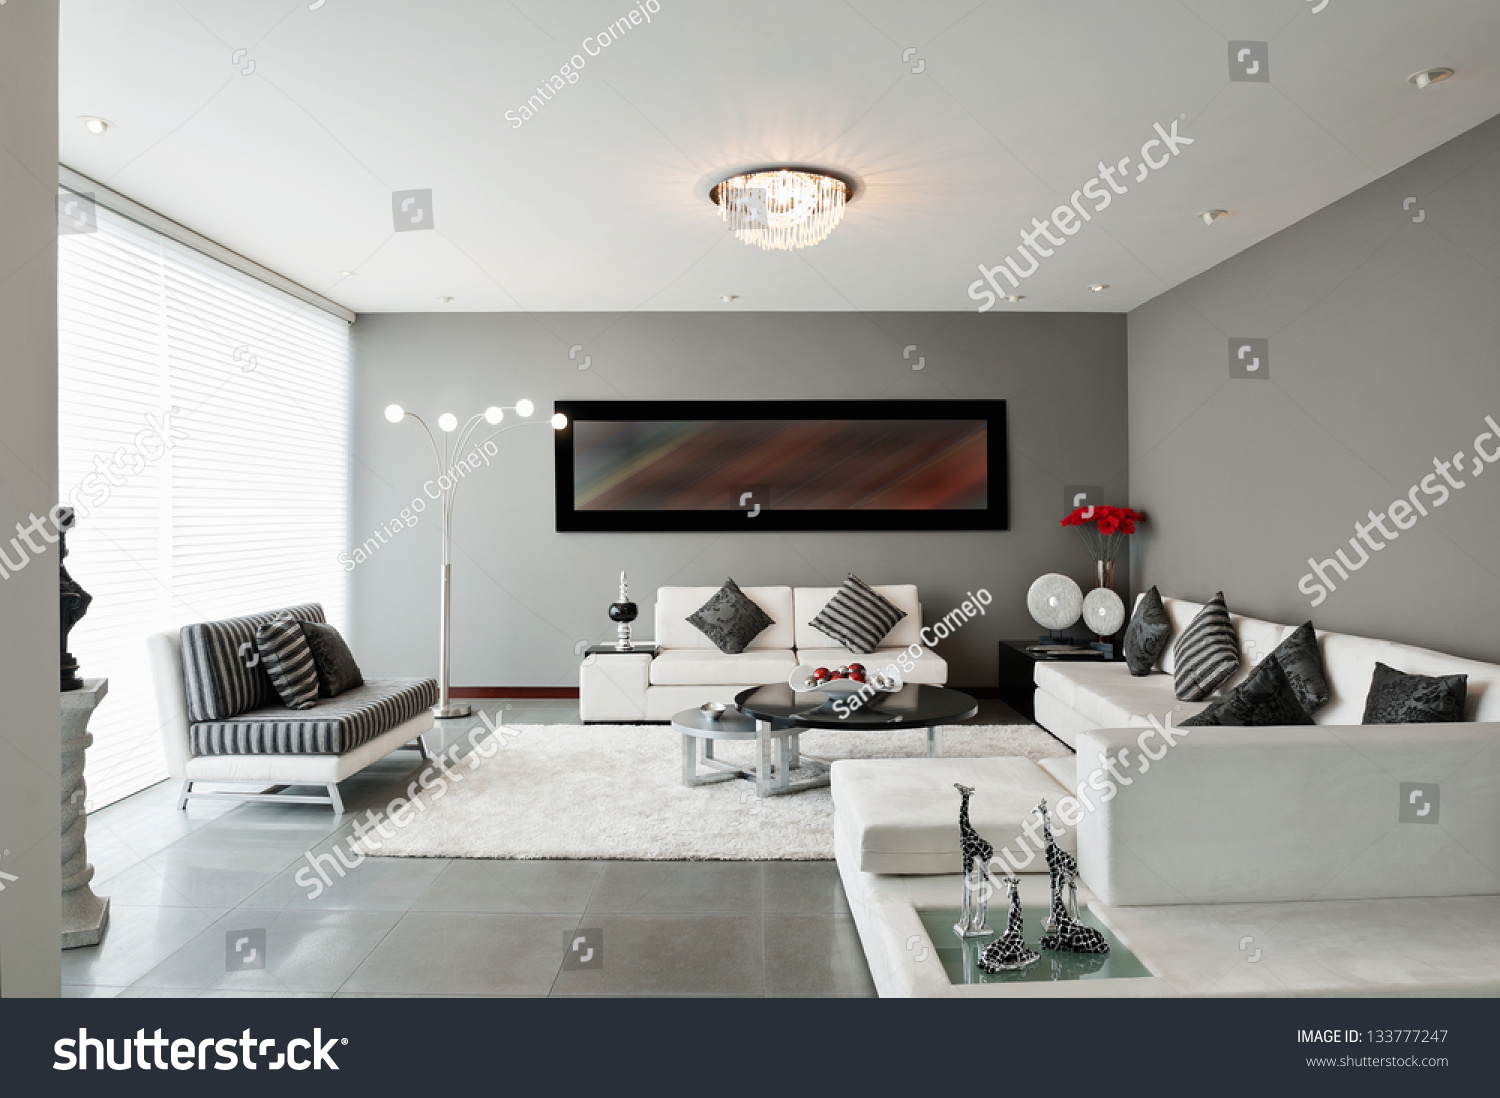 Living Room Design Living interior design living room stock photo 133777247 shutterstock save to a lightbox